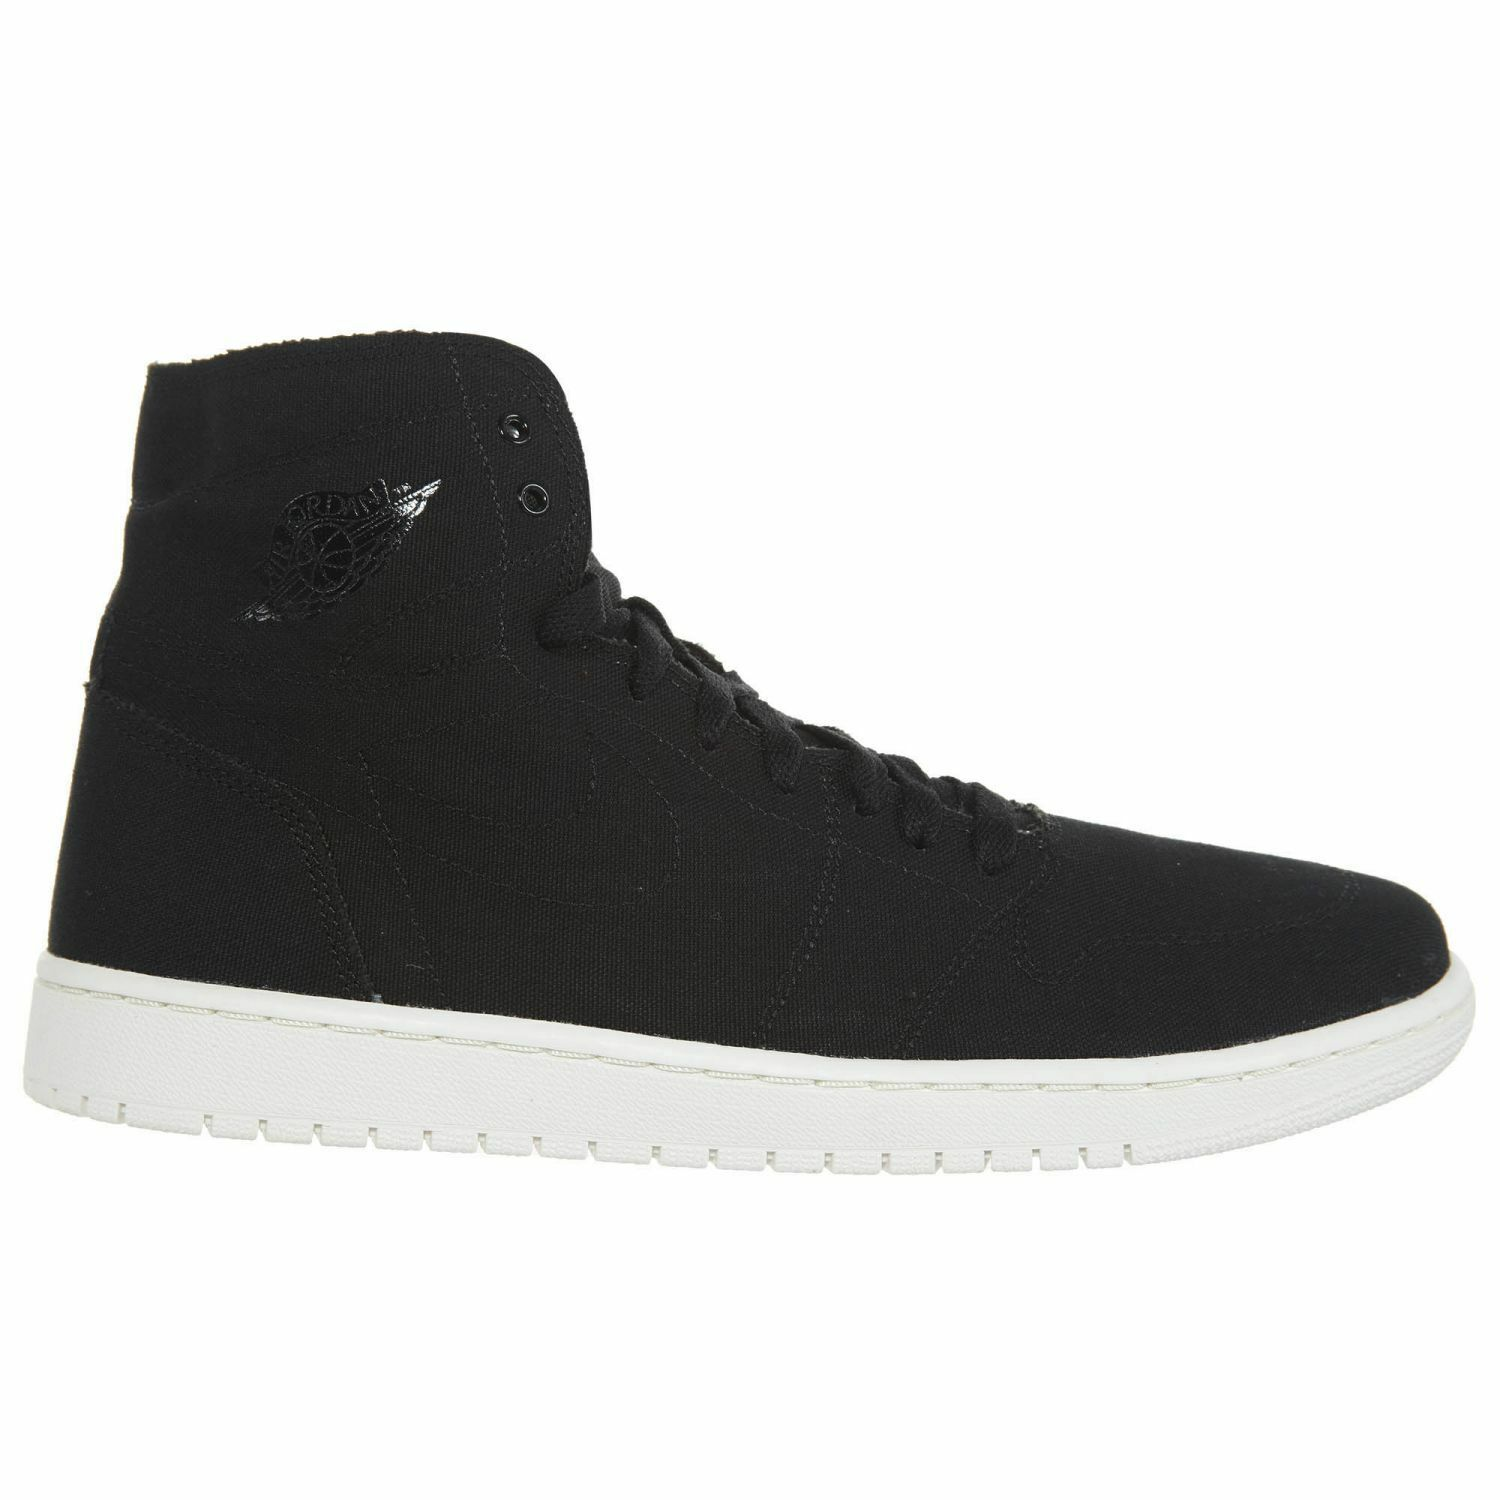 Air Jordan 1 Retro High Deconstructed Mens 867338-010 Black Sail Shoes Comfortable The latest discount shoes for men and women